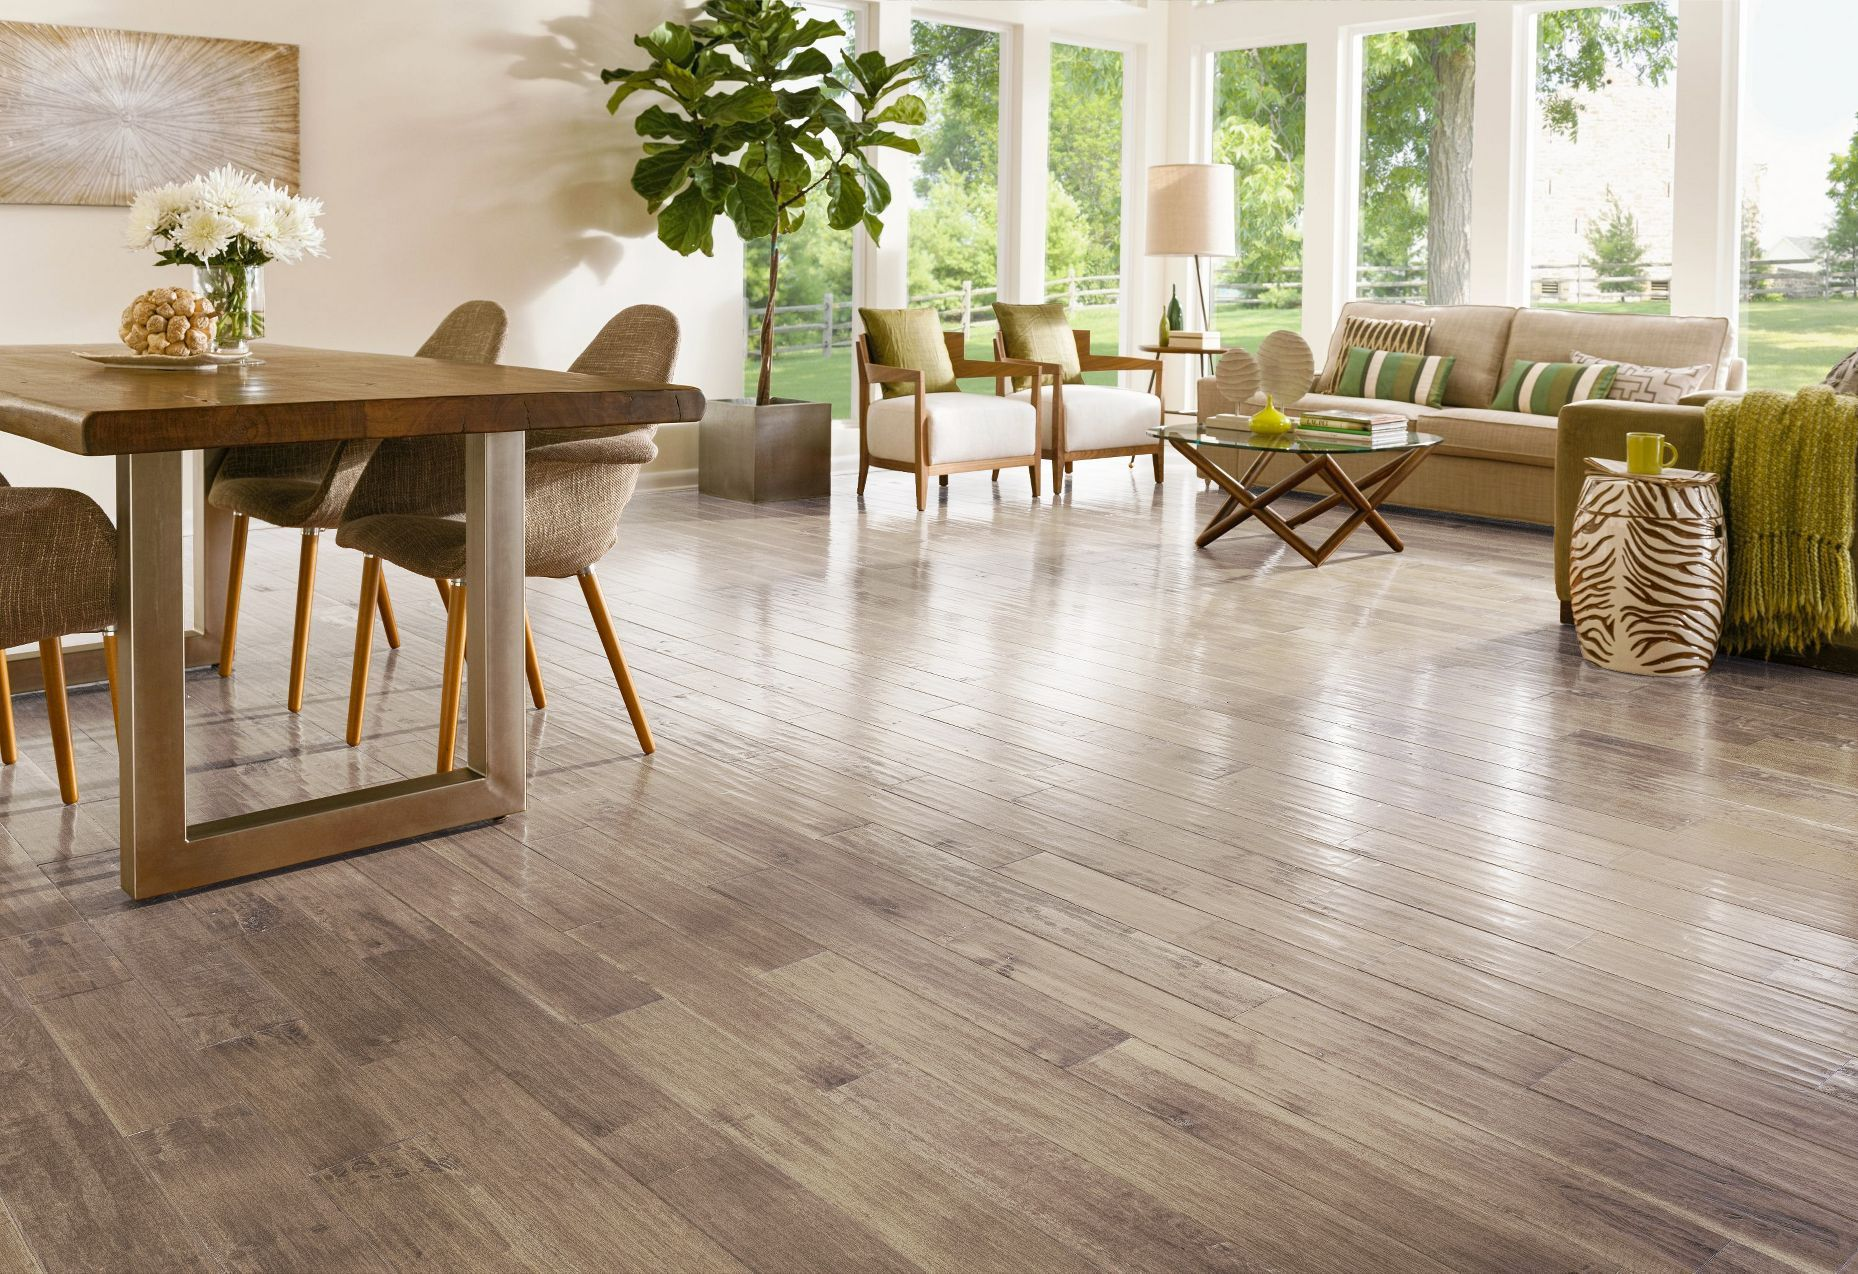 american wood armstrong floors hardwood watch review scrape flooring product